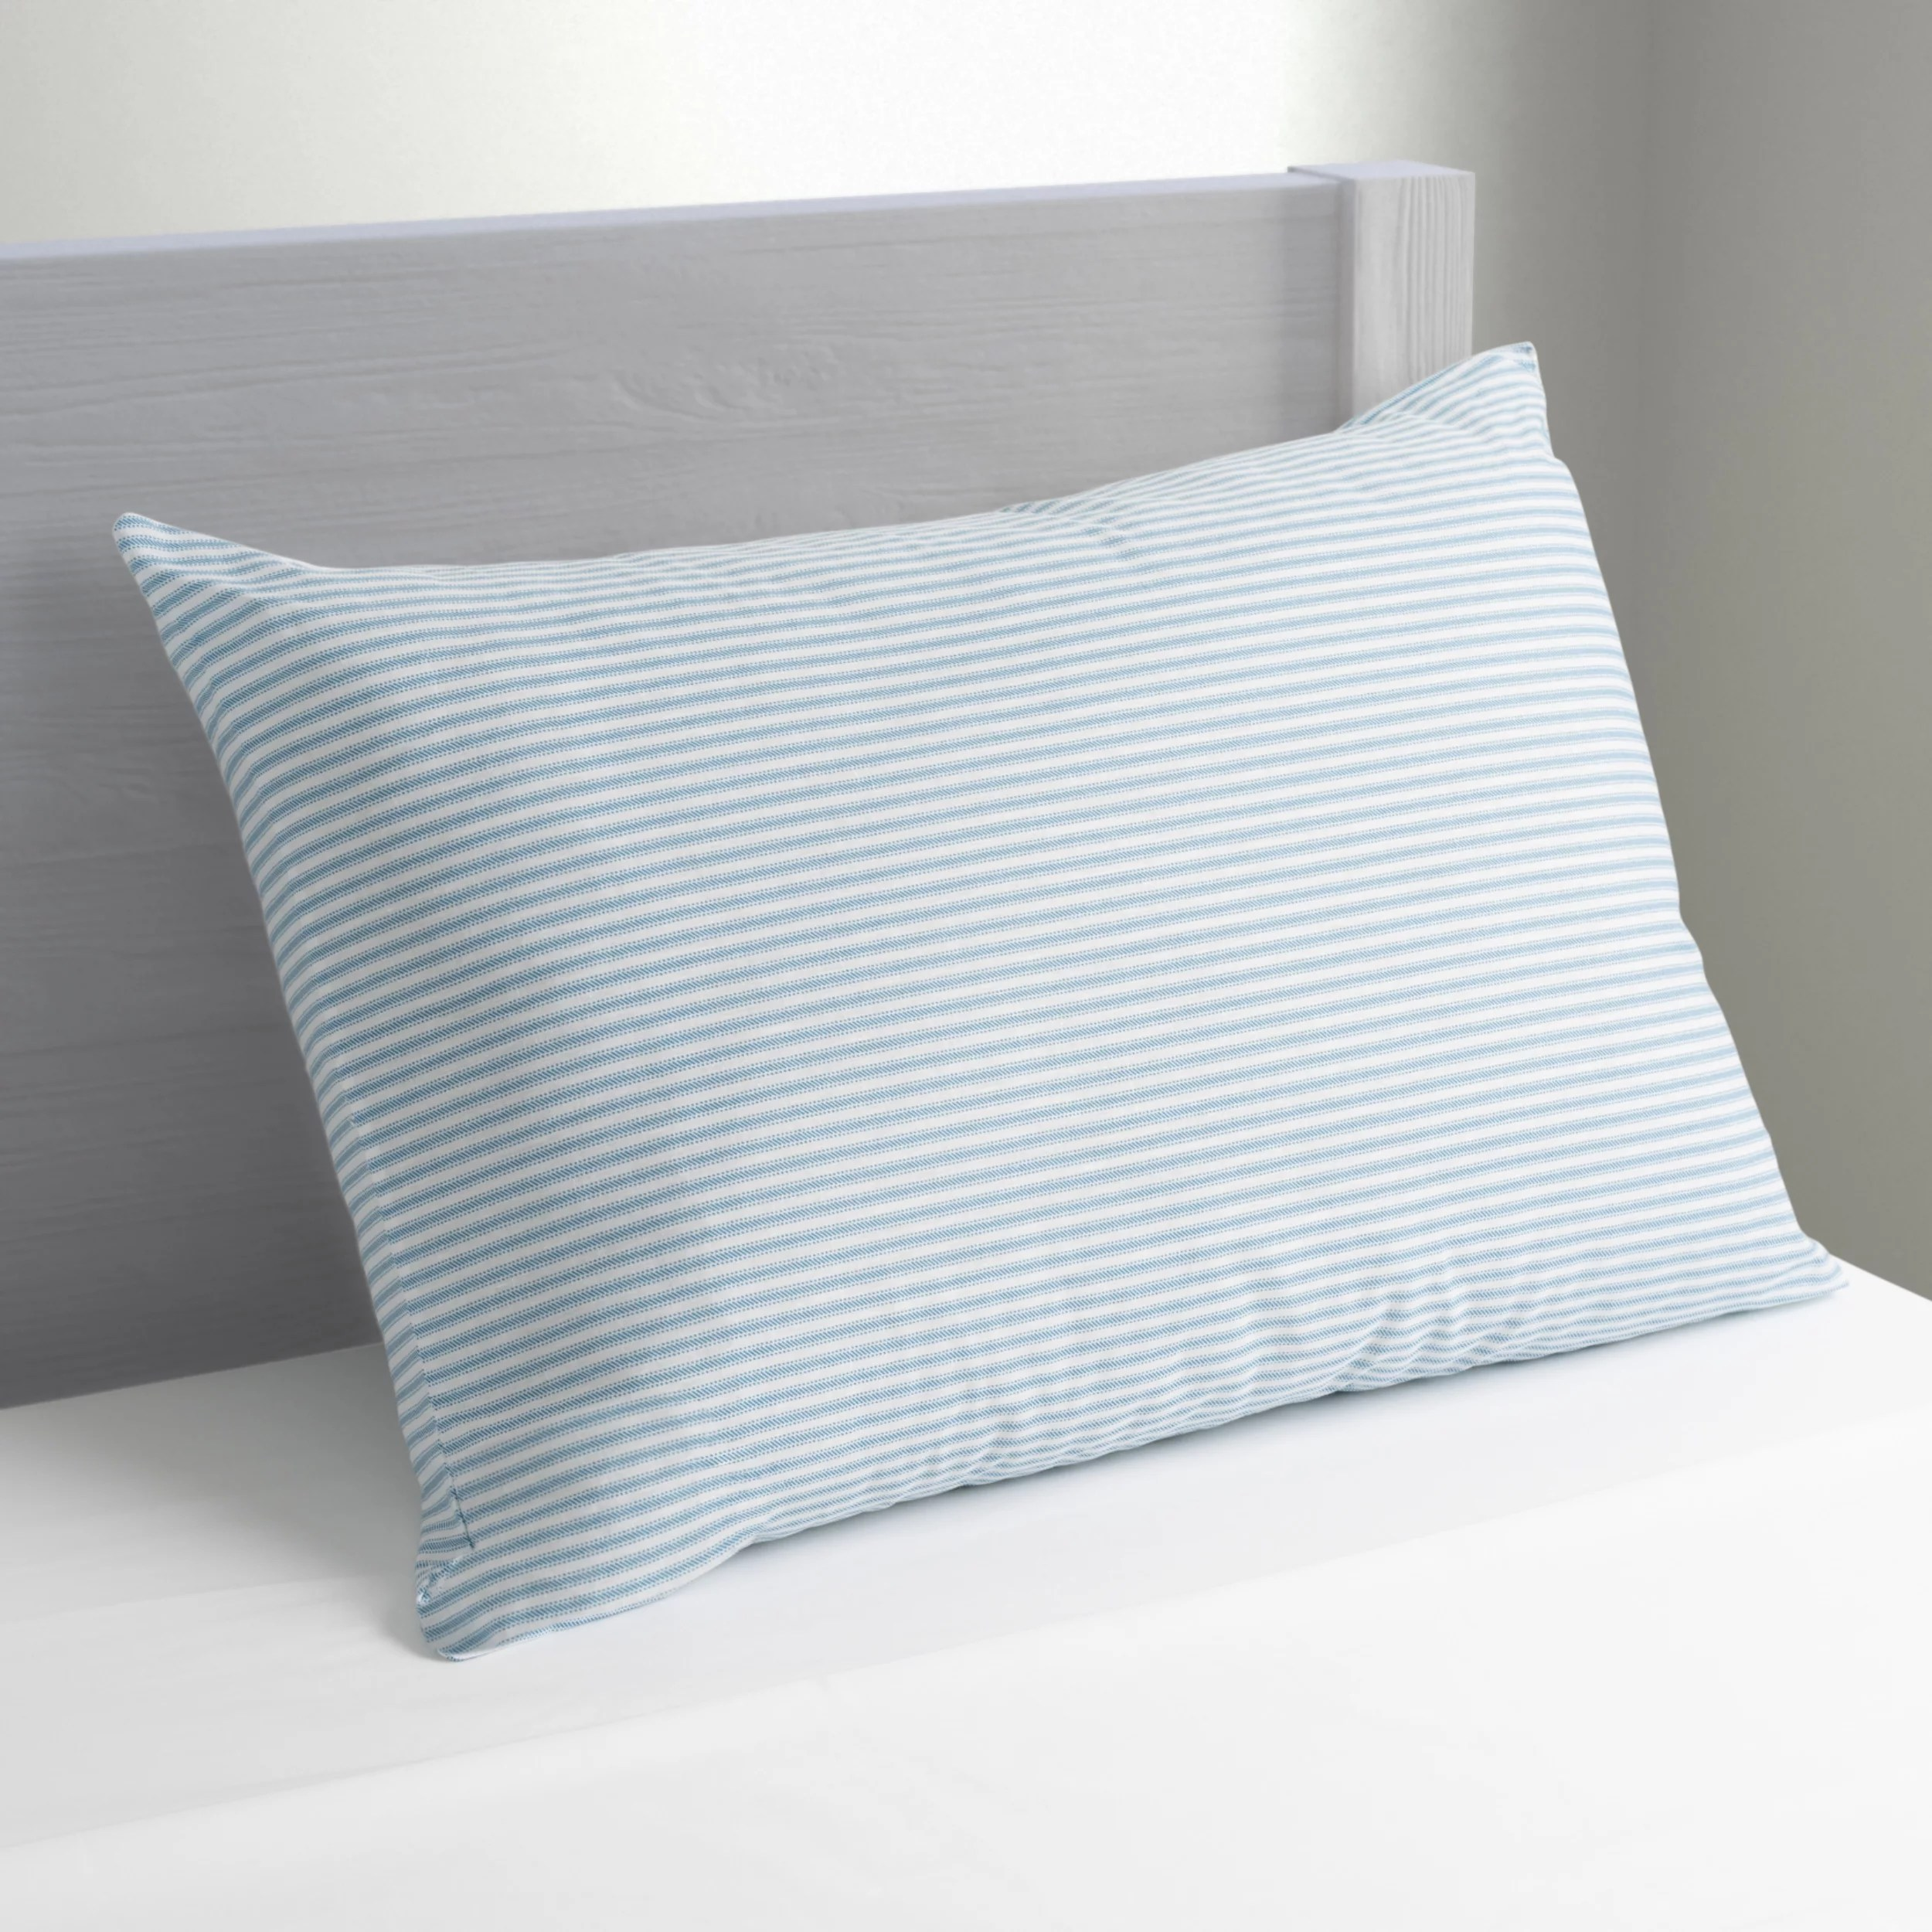 mainstays huge pillow 20 x 28 in blue and white stripe walmart com